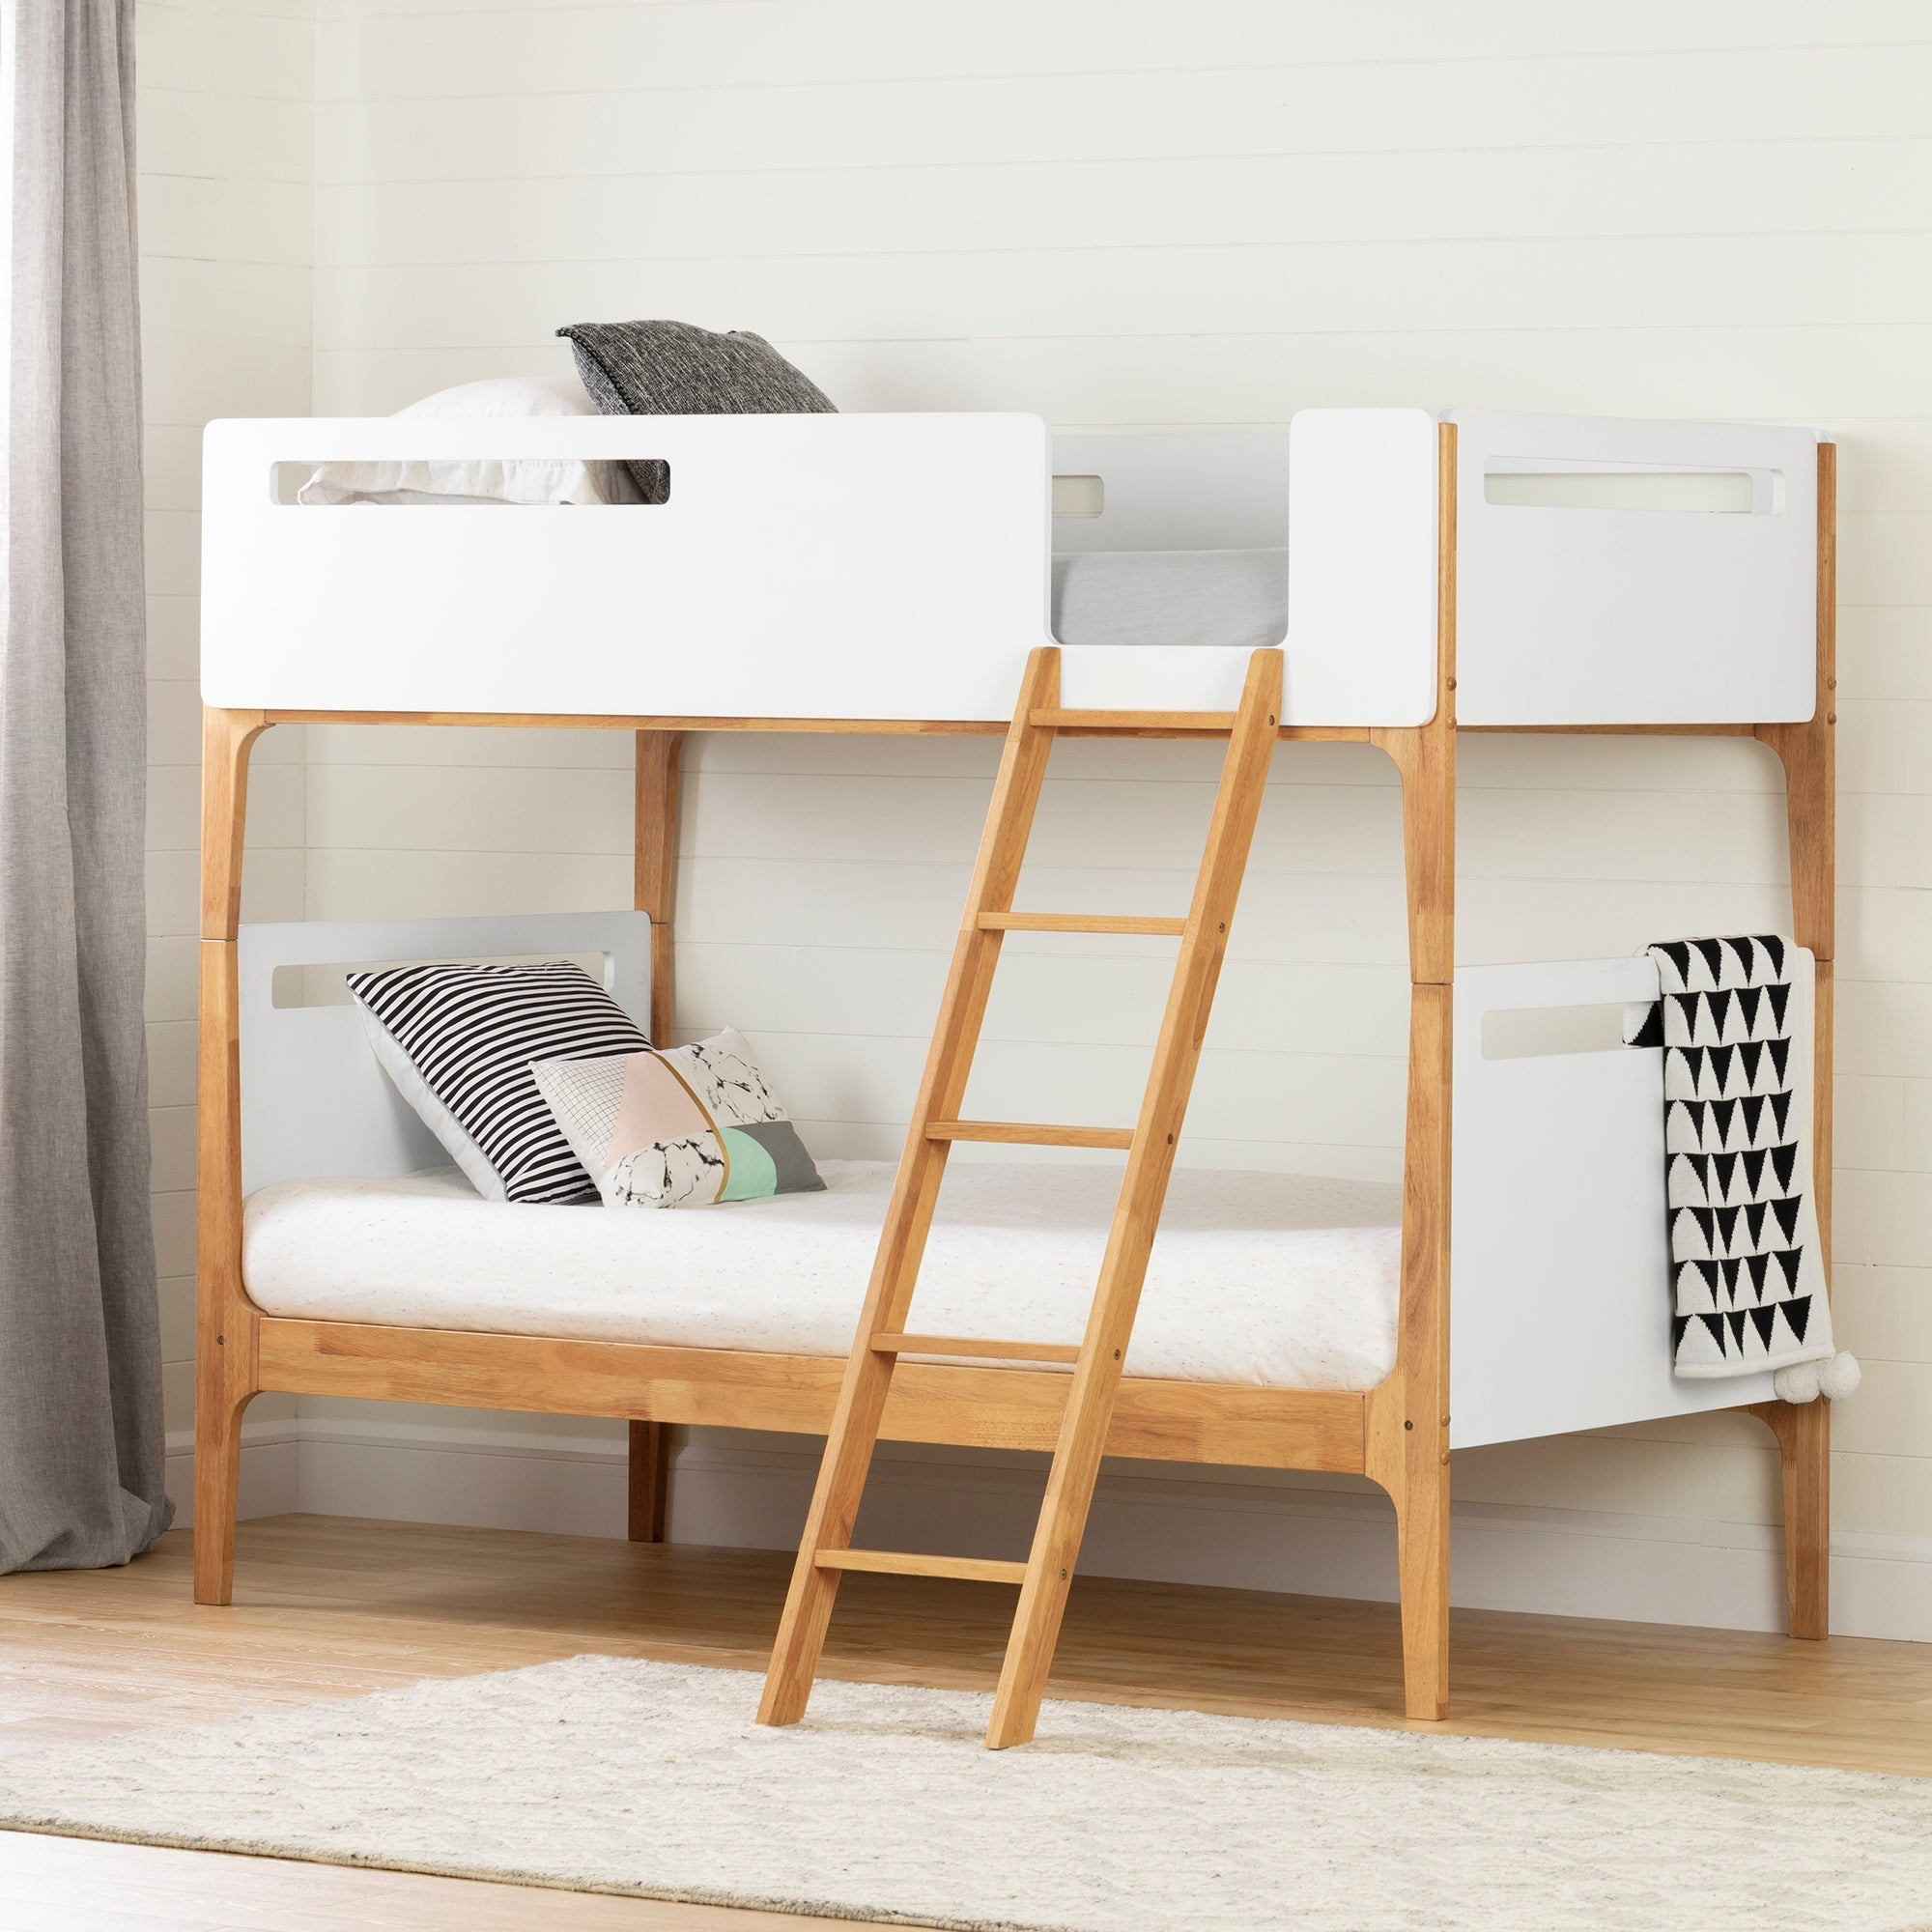 Modern Bunk Beds Cheaper Than Retail Price Buy Clothing Accessories And Lifestyle Products For Women Men